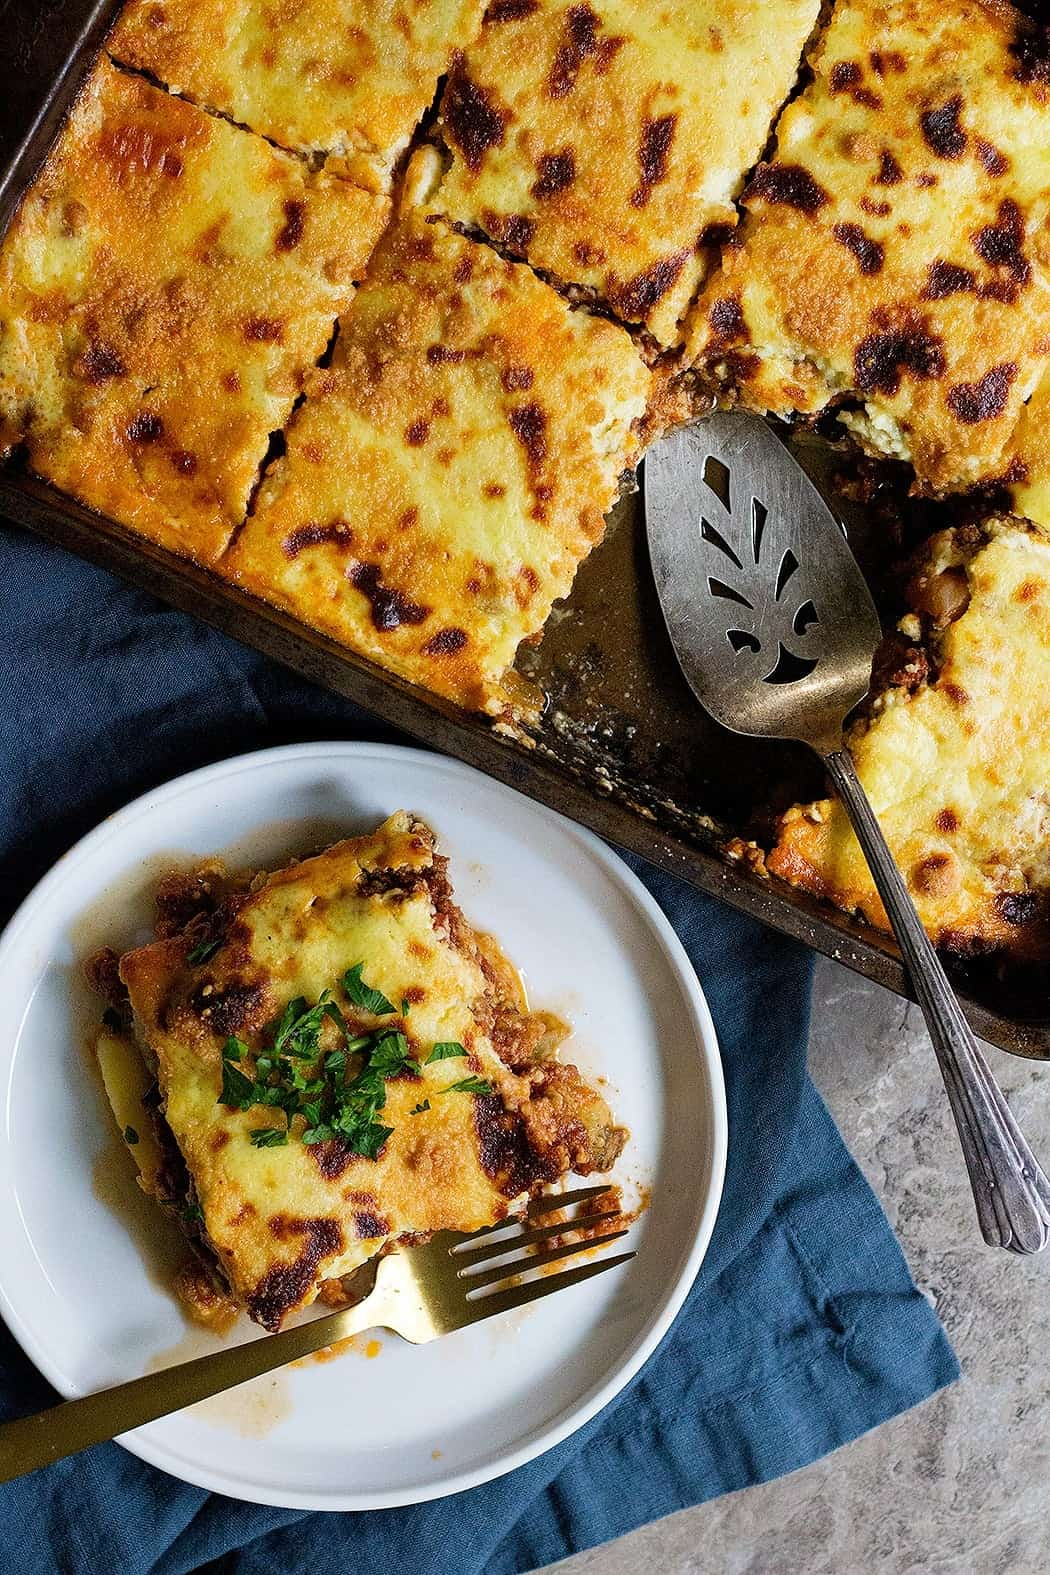 Greek moussaka is a classic comfort food of the Mediterranean region. This step by step moussaka recipe will show you how easy and comforting it is to make this delicious eggplant casserole.